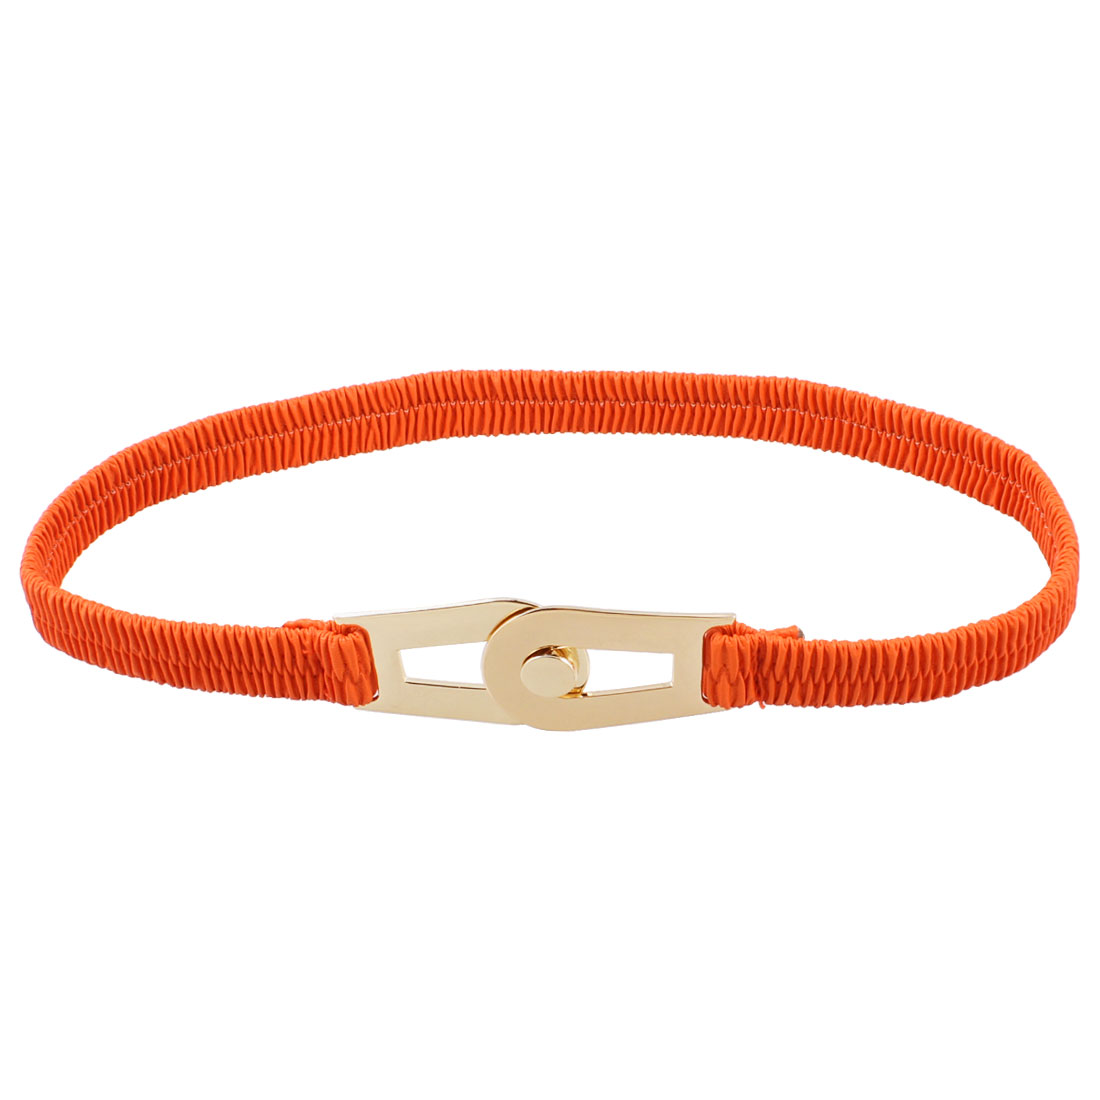 Orange Faux Leather Interlocking Buckle Elastic Waist Cinch Belt for Woman